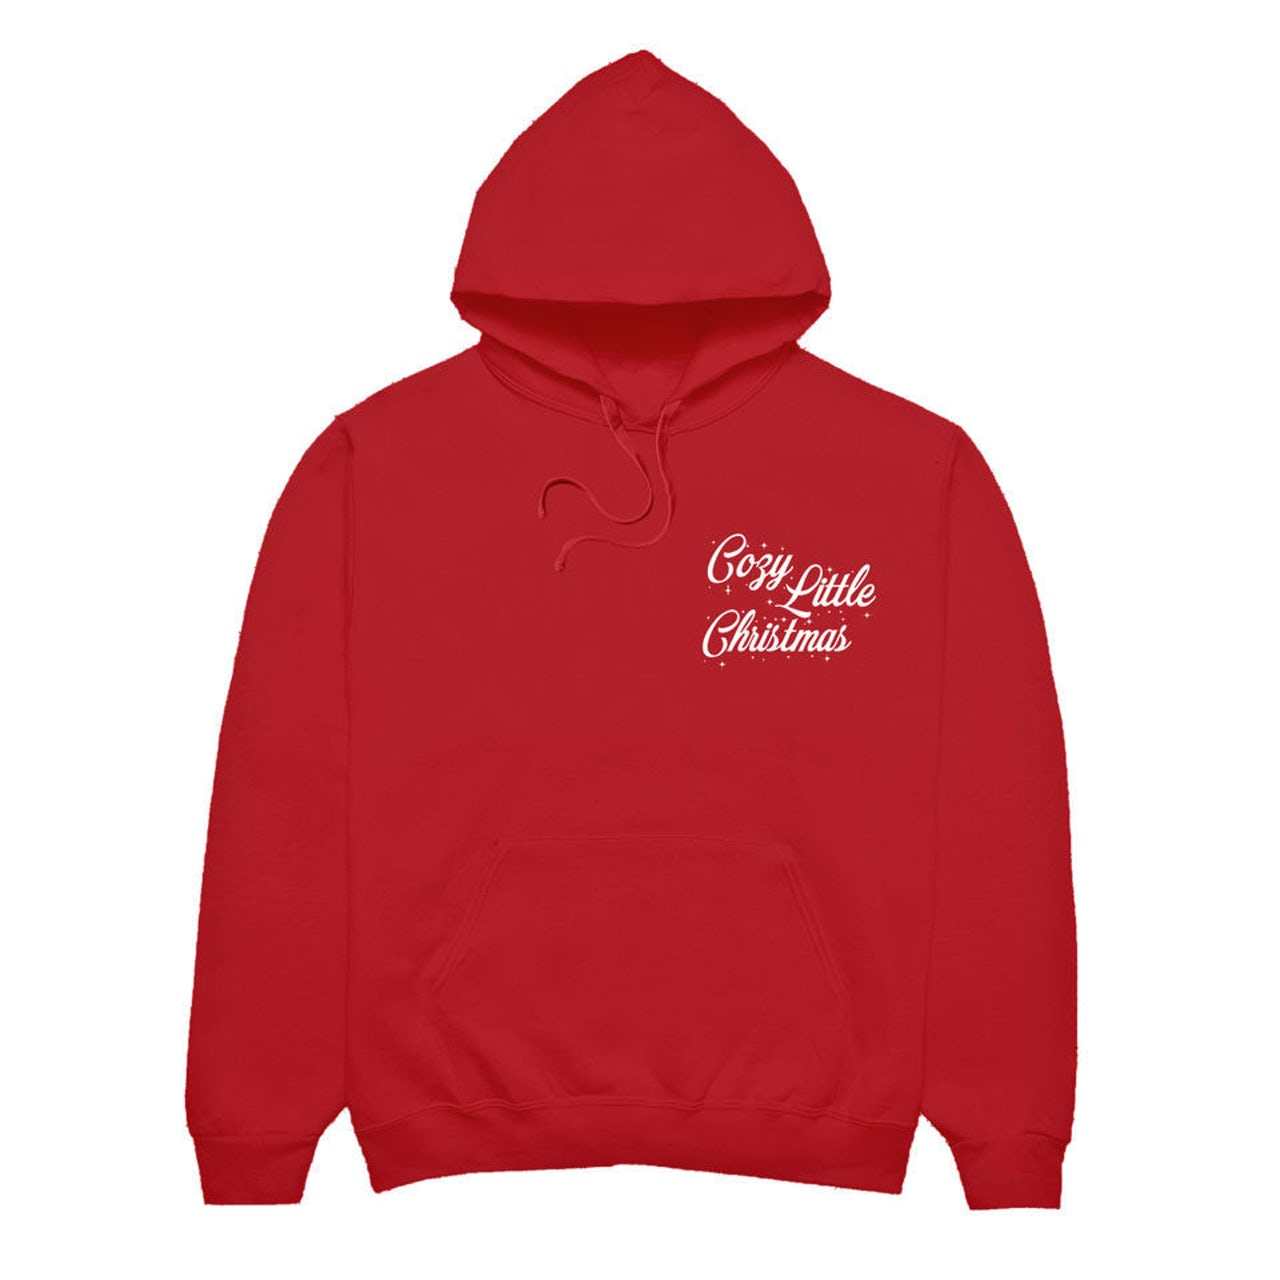 Katy Perry Cozy Little Christmas.Katy Perry Cozy Little Christmas Red Hoodie